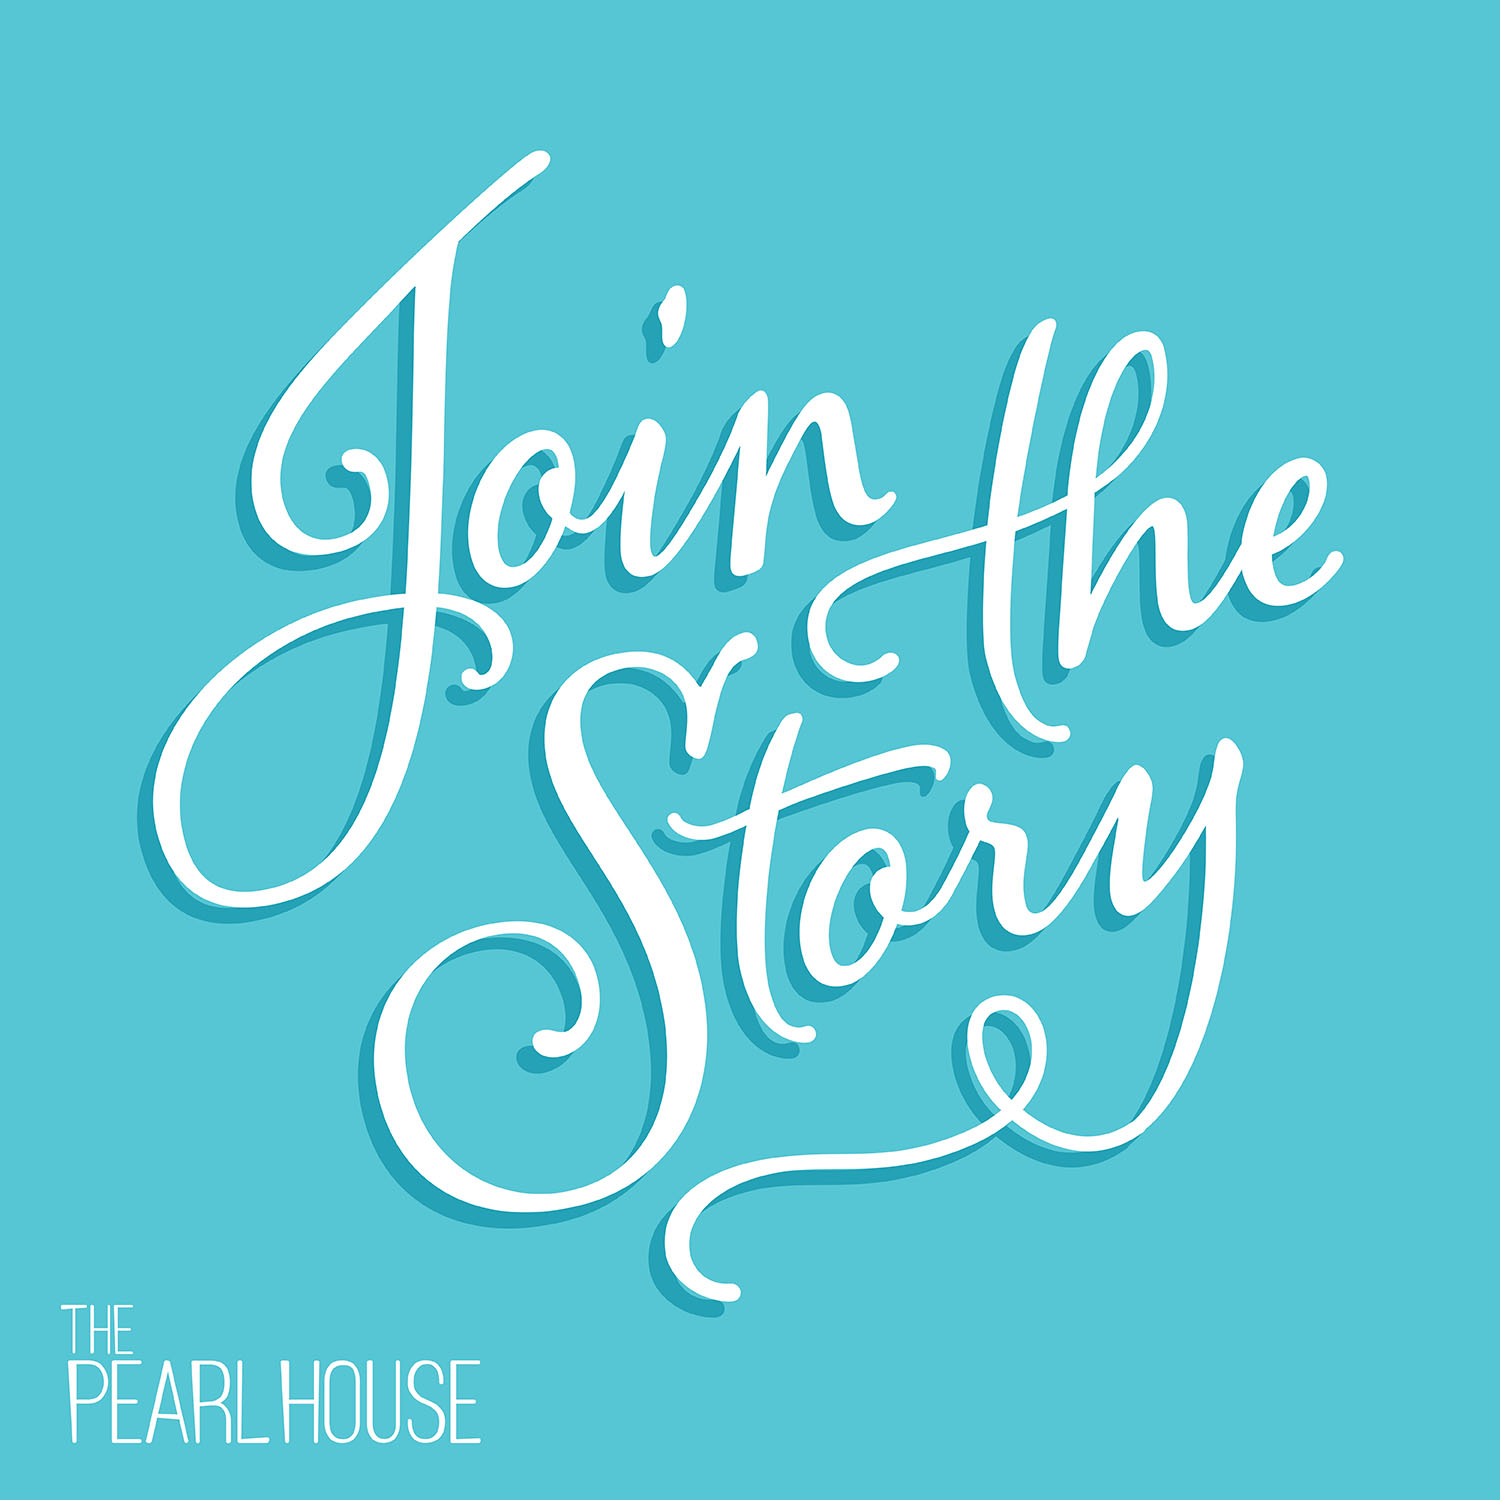 A type graphic designed for a promotional event for The Pearl House.